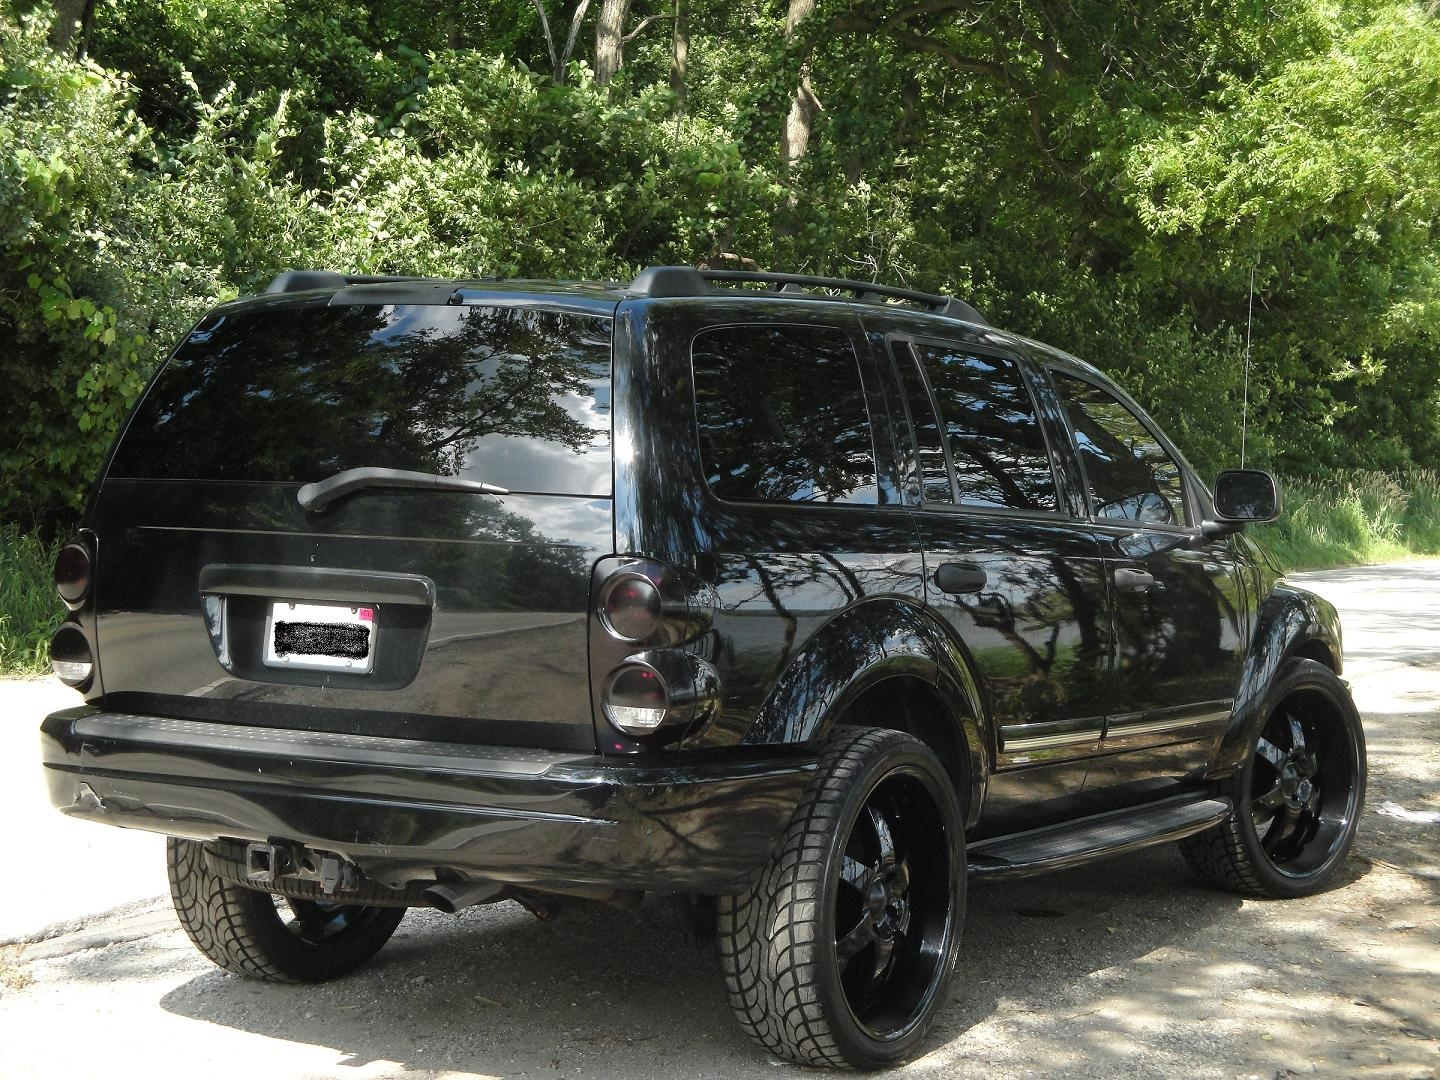 mayhemz2405 2005 dodge durango specs photos modification info at cardomain. Black Bedroom Furniture Sets. Home Design Ideas